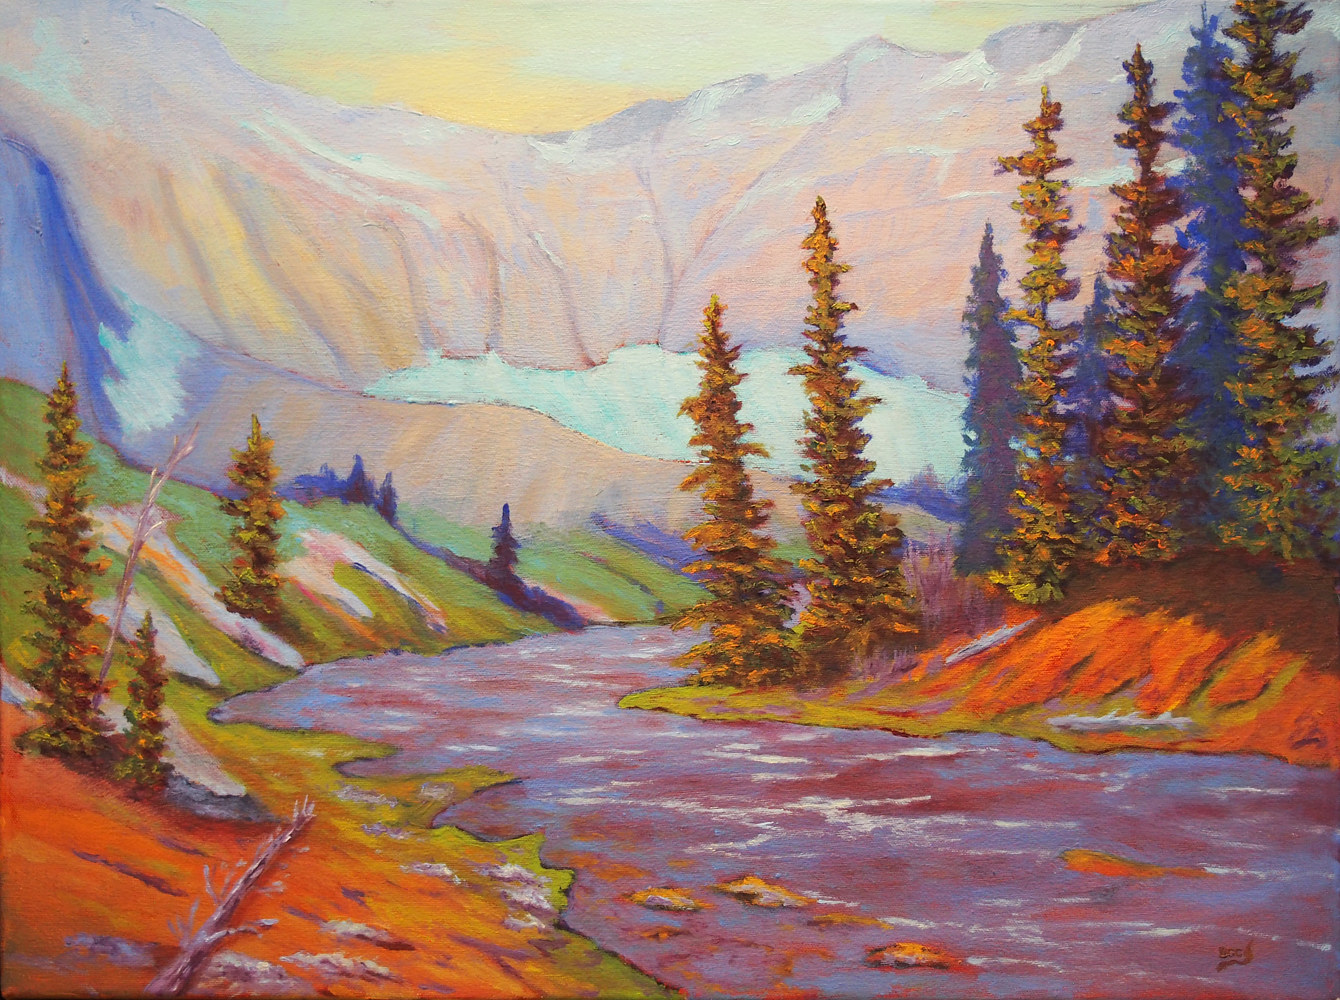 Oil painting Upper Kananaskis by Brent Ciccone